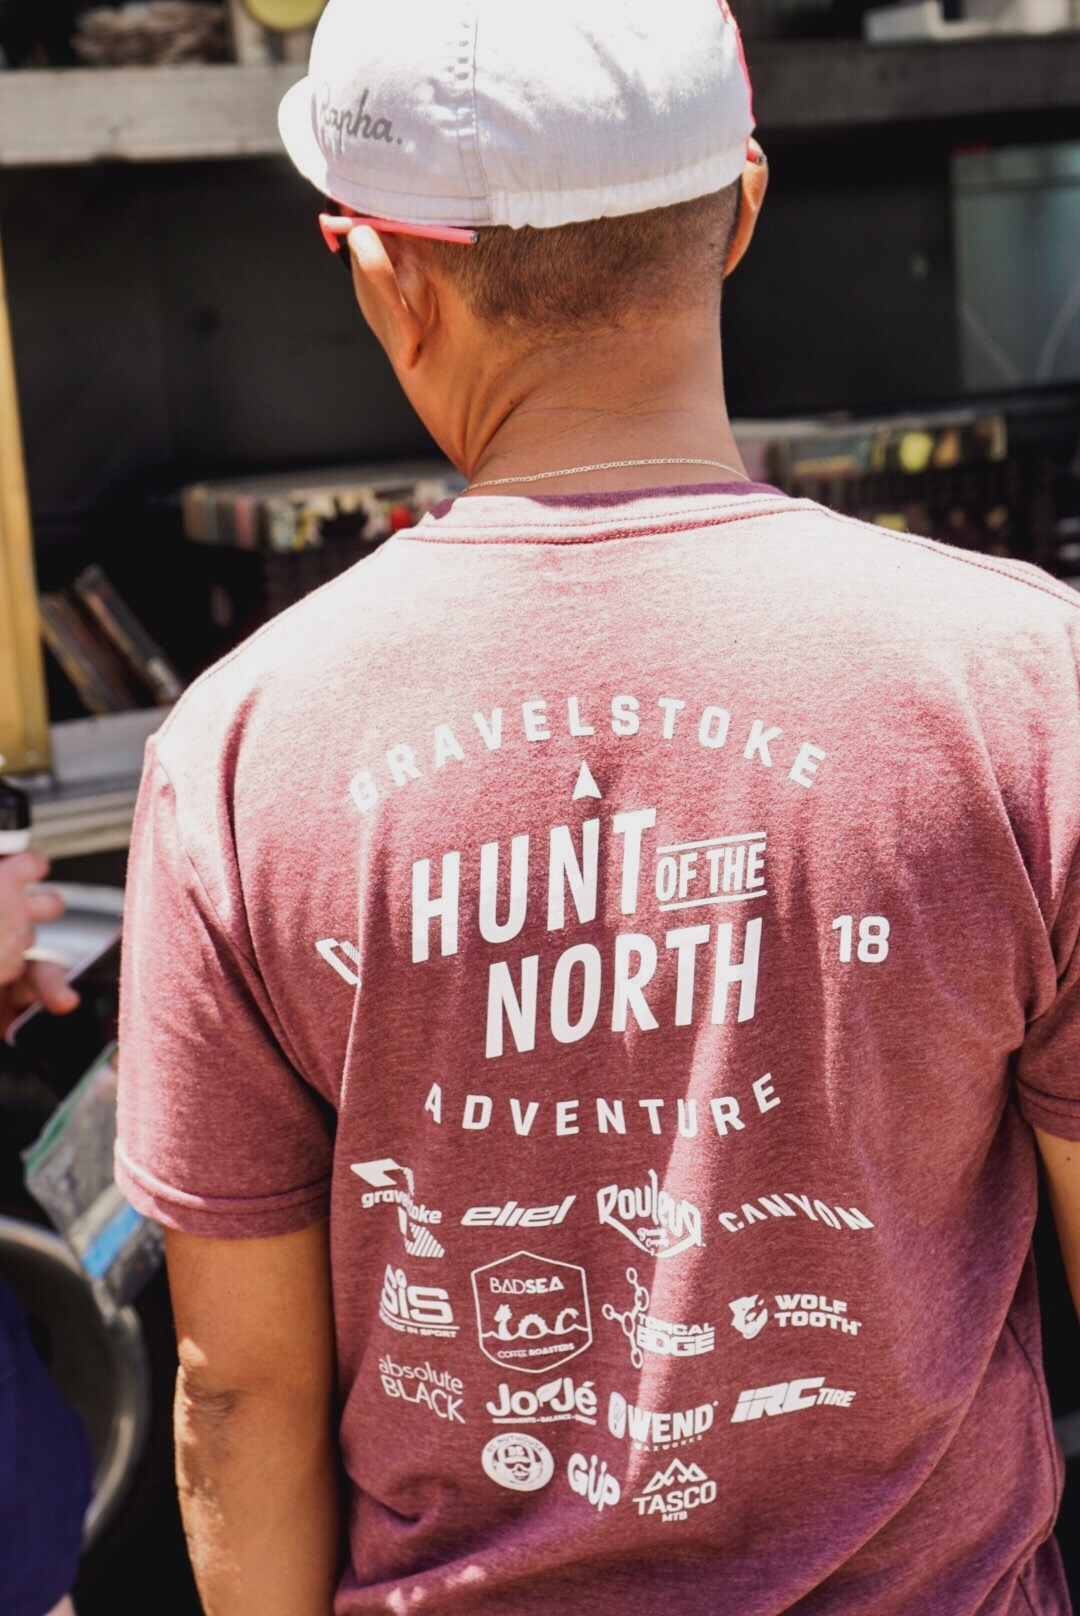 Our event t-shirt, oh so comfortable. PC: J. Babb